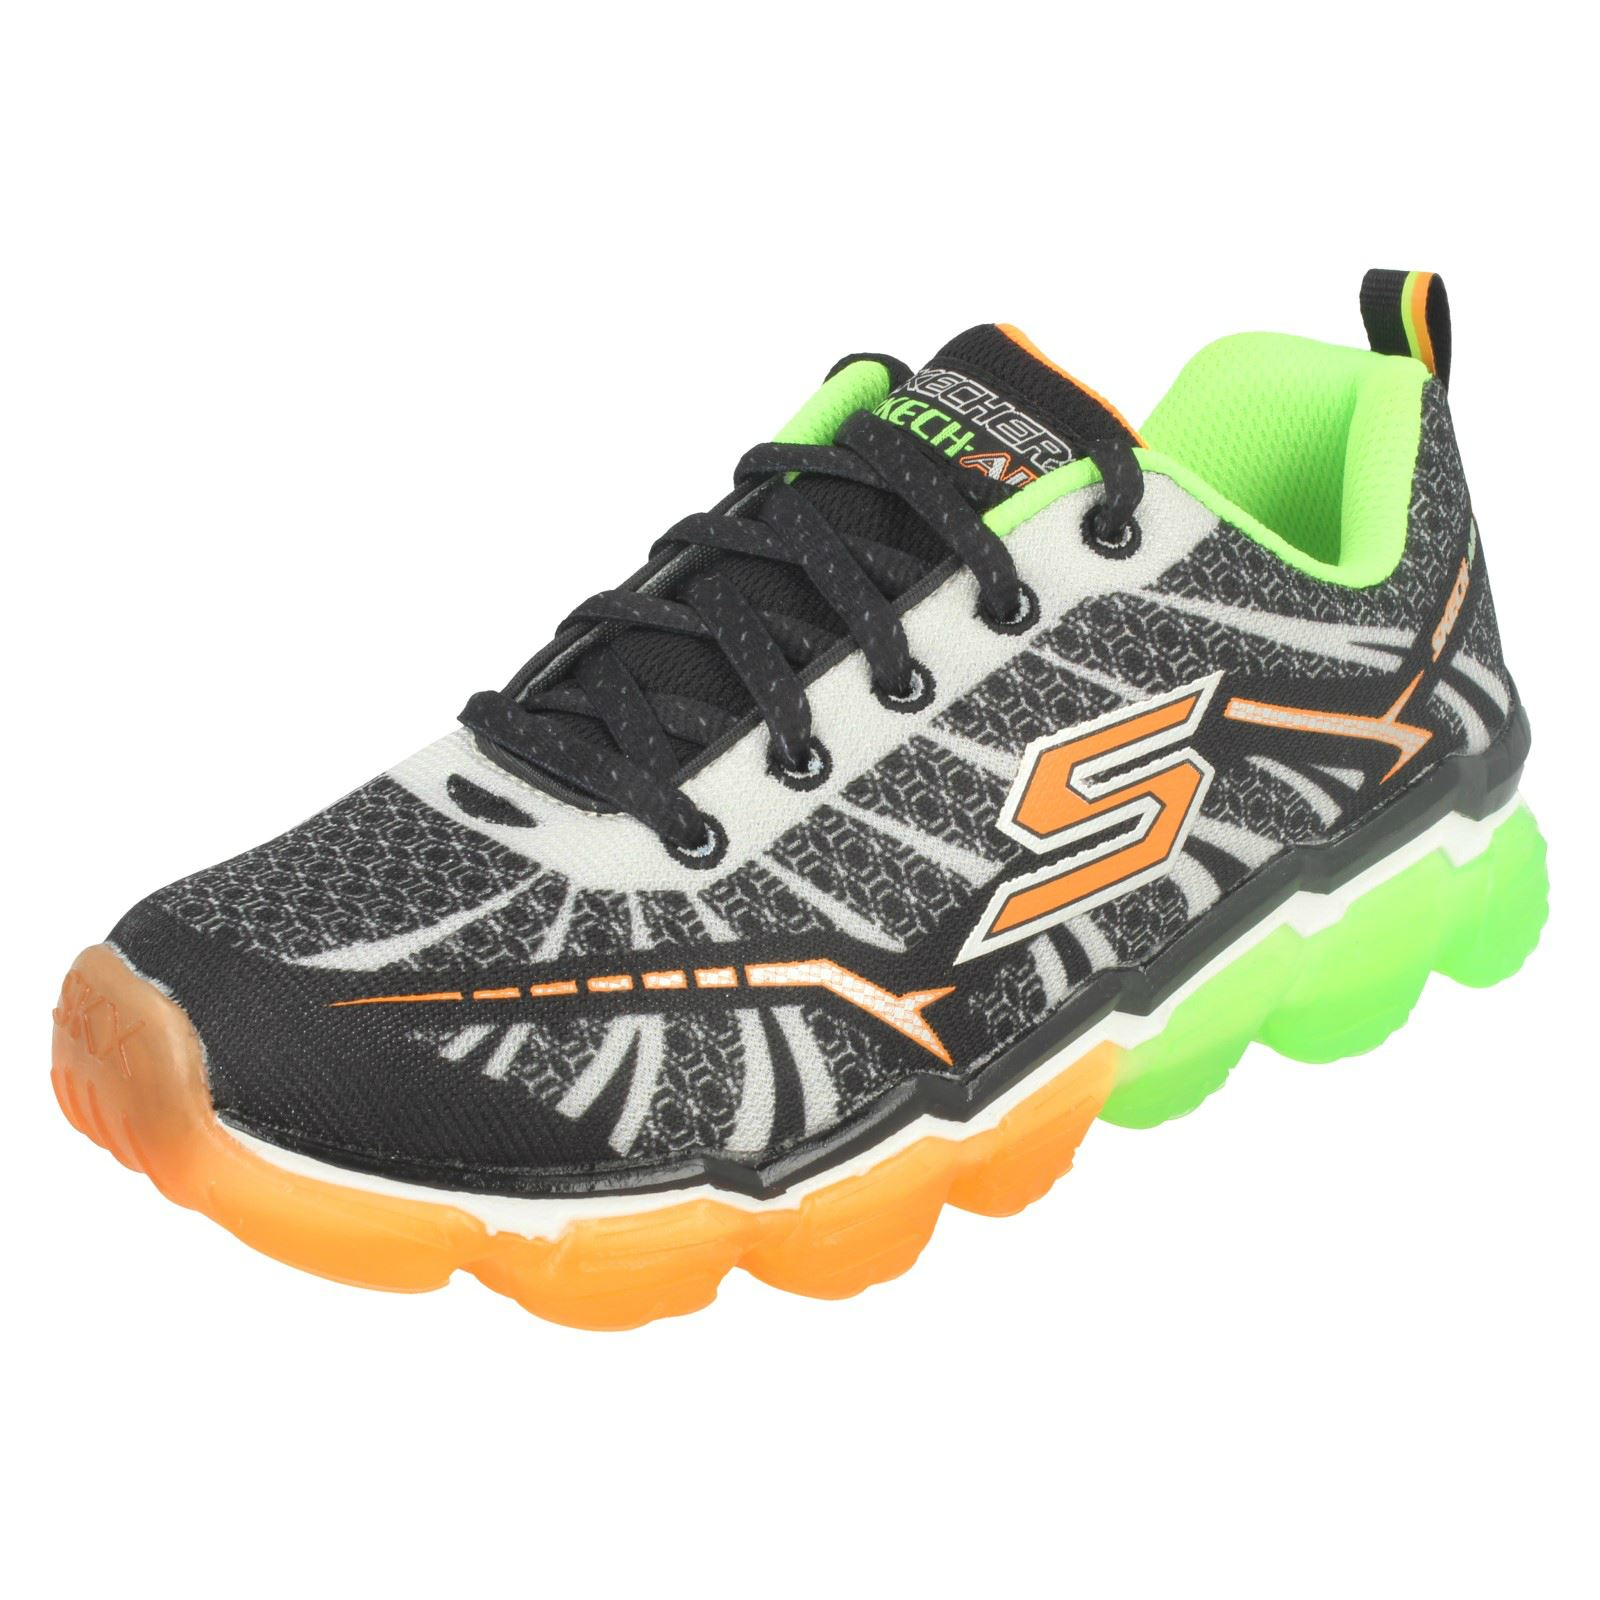 9bc8478b27d8 Boys Skechers Turbo Shock Lace up Comfortable Casual Trainers 95108 ...